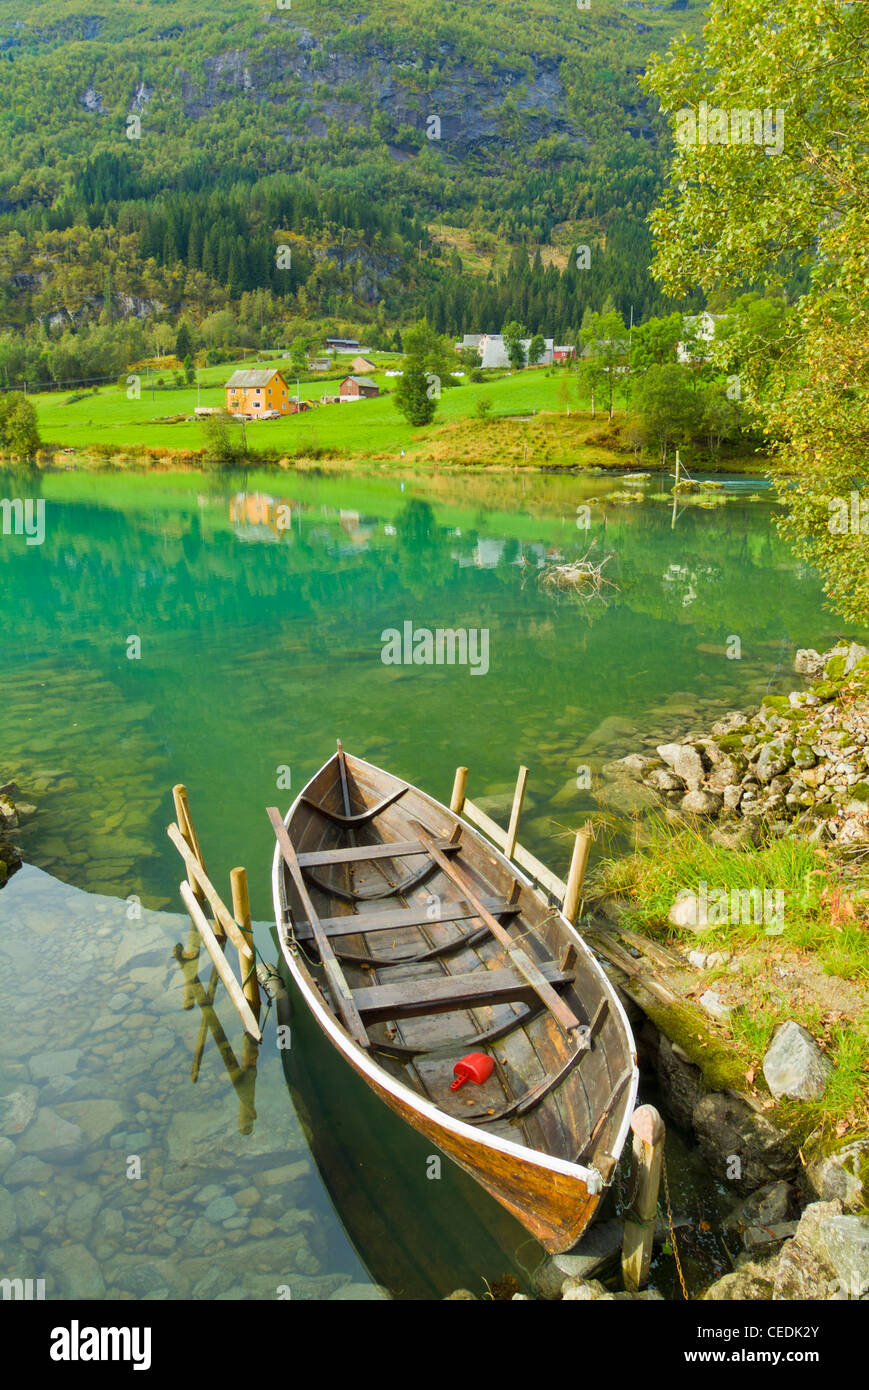 An old rowing boat on Oldevatnet lake Olden Valley Sogn og Fjordane Fjordland norway - Stock Image